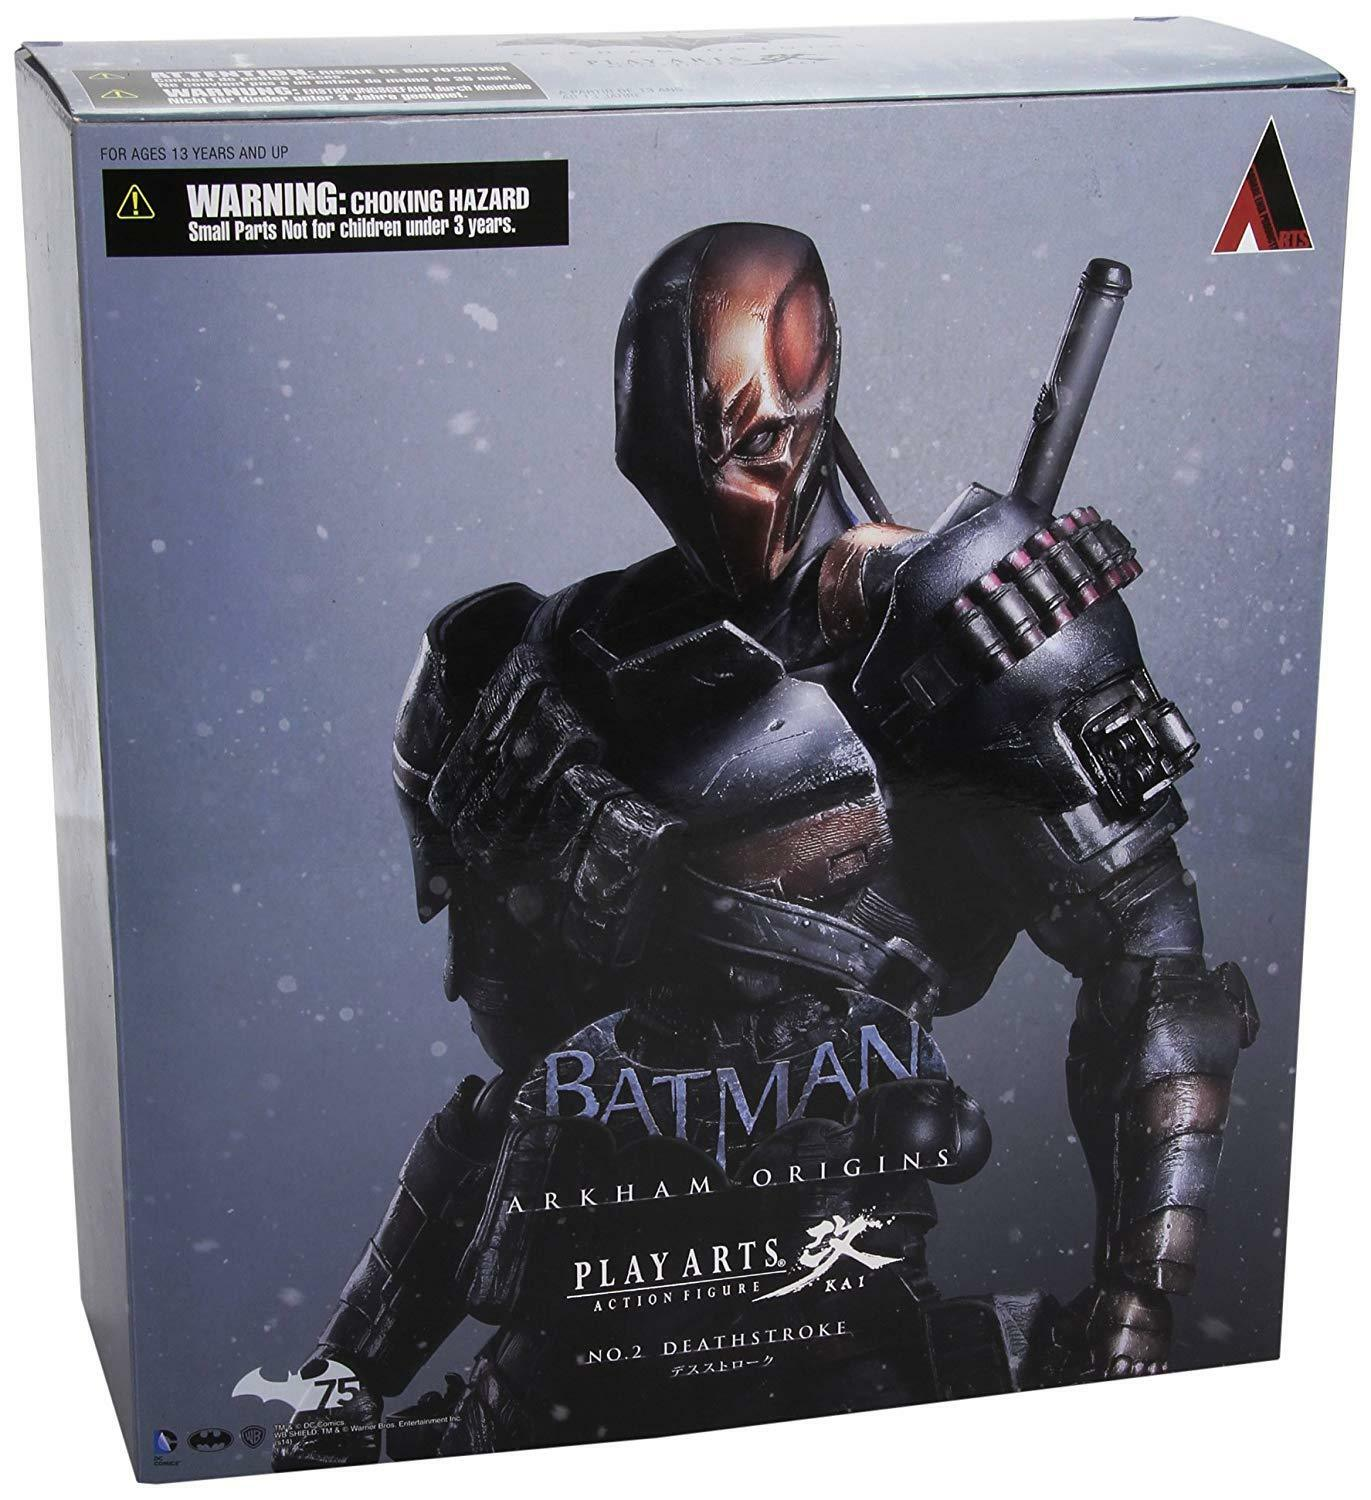 Square Enix Play Arts Kai Deathstroke Arkham Origins Action Figure